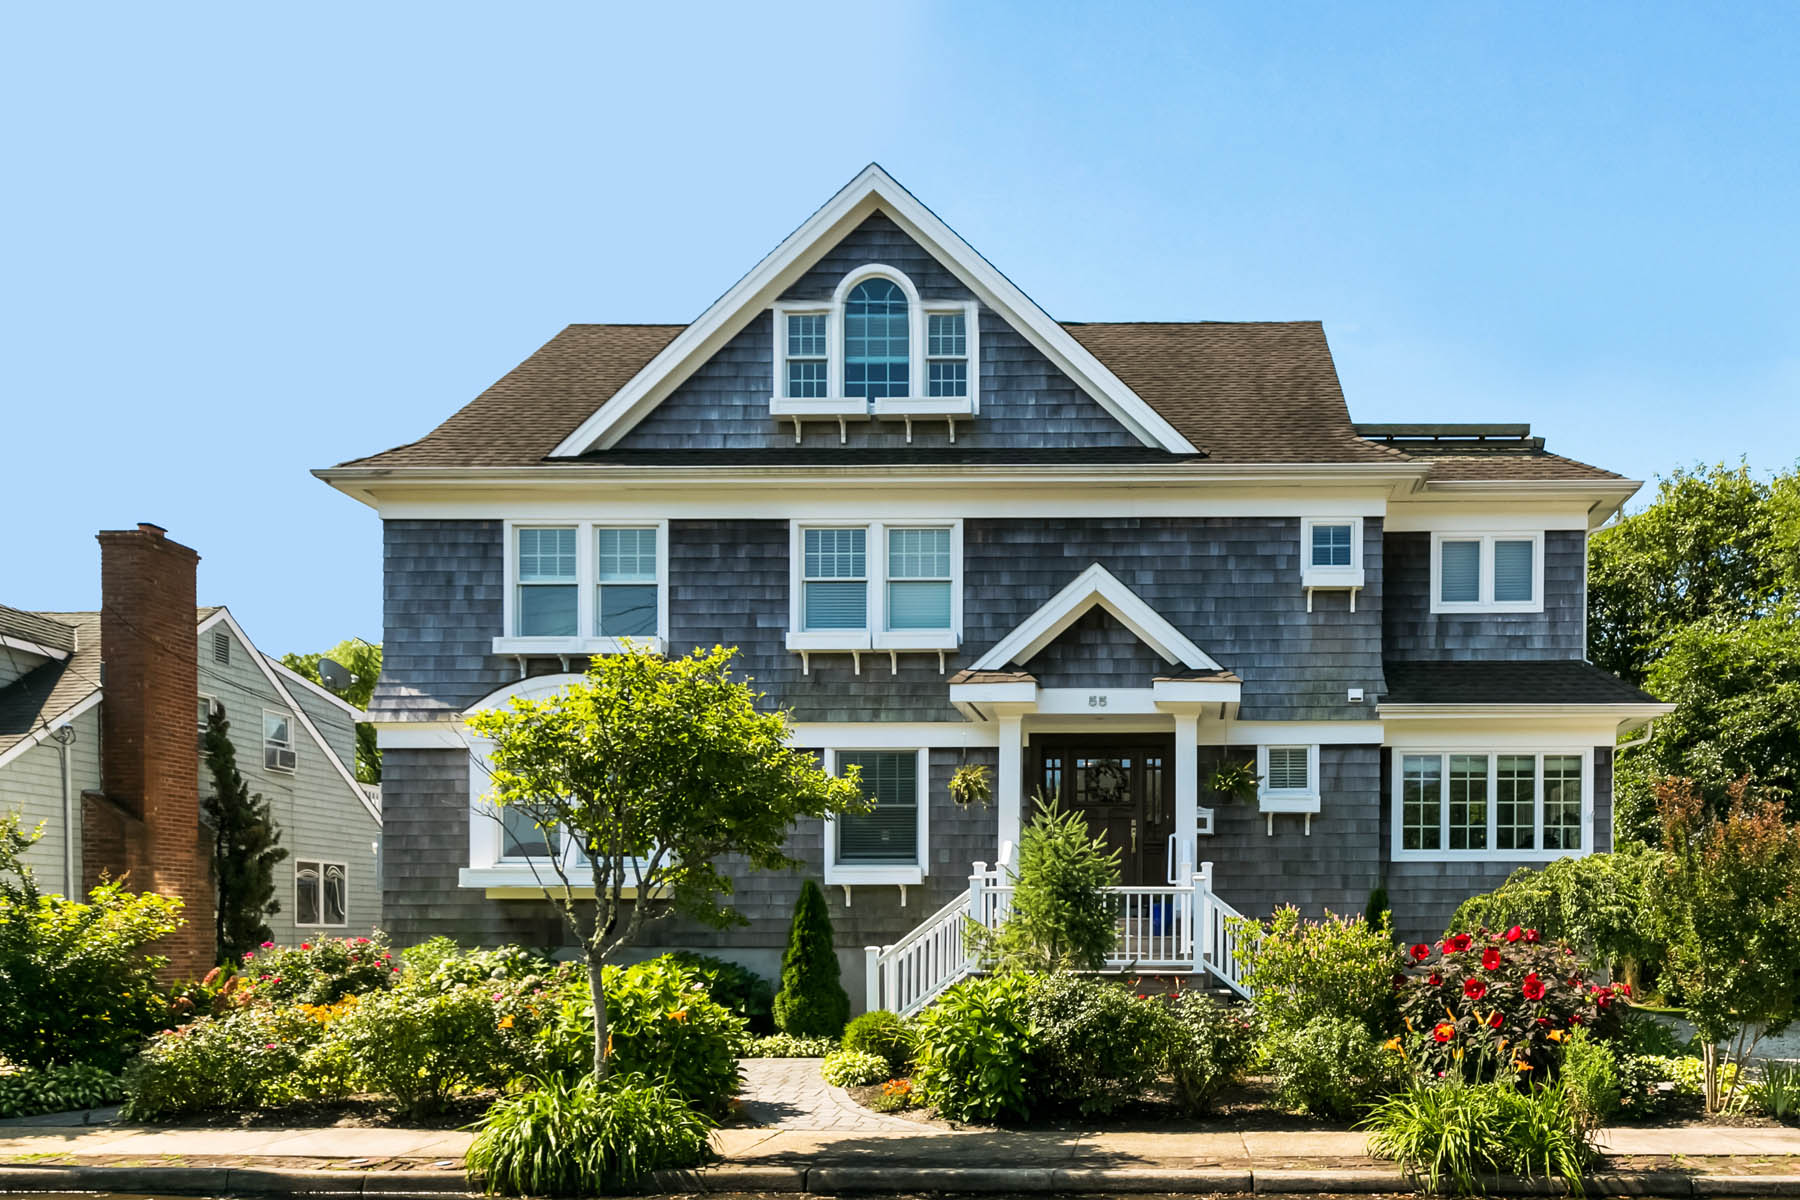 Single Family Homes for Active at Spacious Custom FEMA Compliant Bay Head Colonial 55 Egbert Street Bay Head, New Jersey 08742 United States